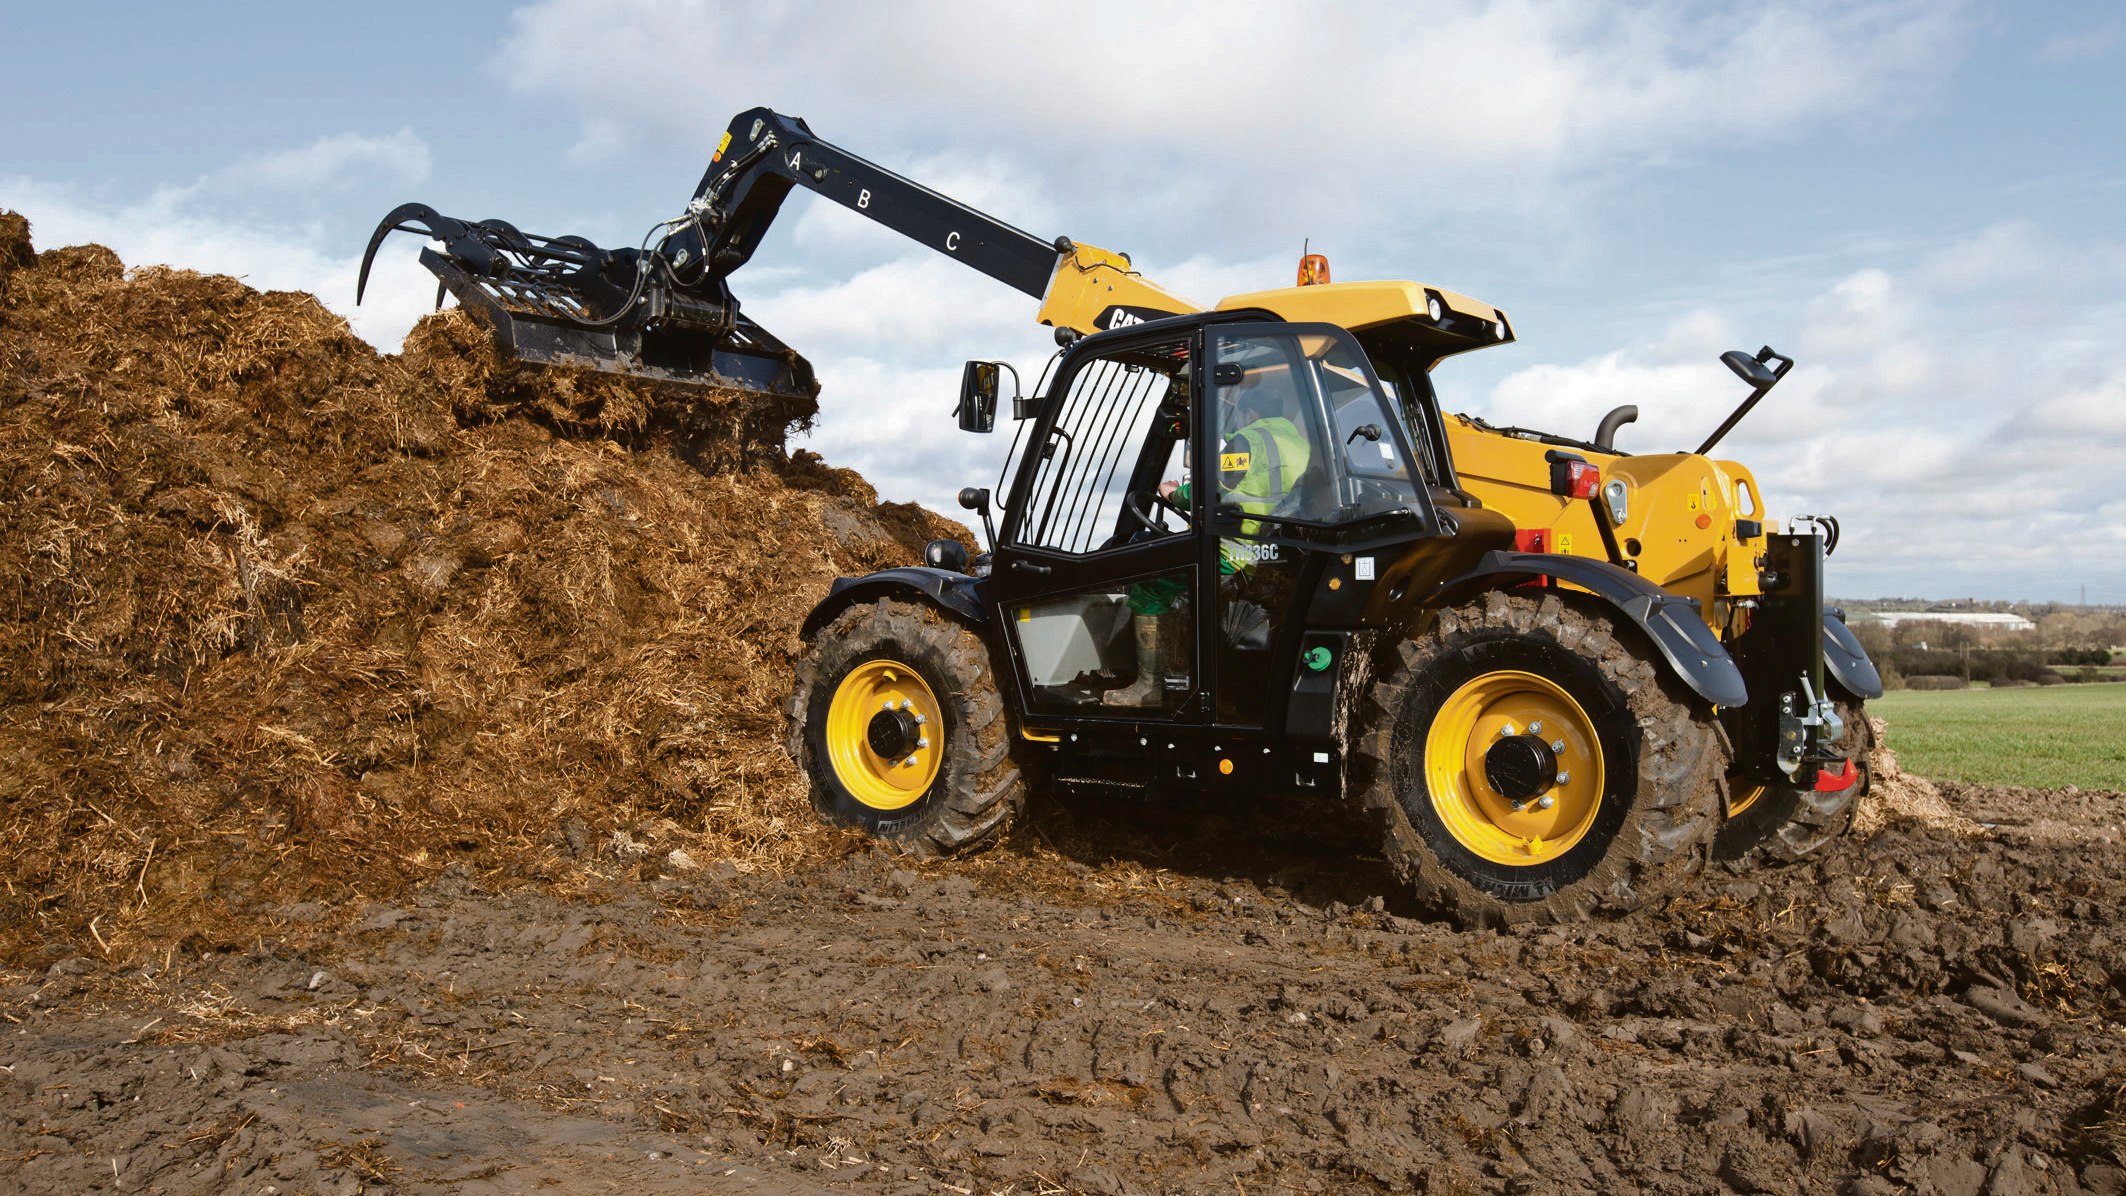 On test: First dedicated ag-spec Cat telehandler